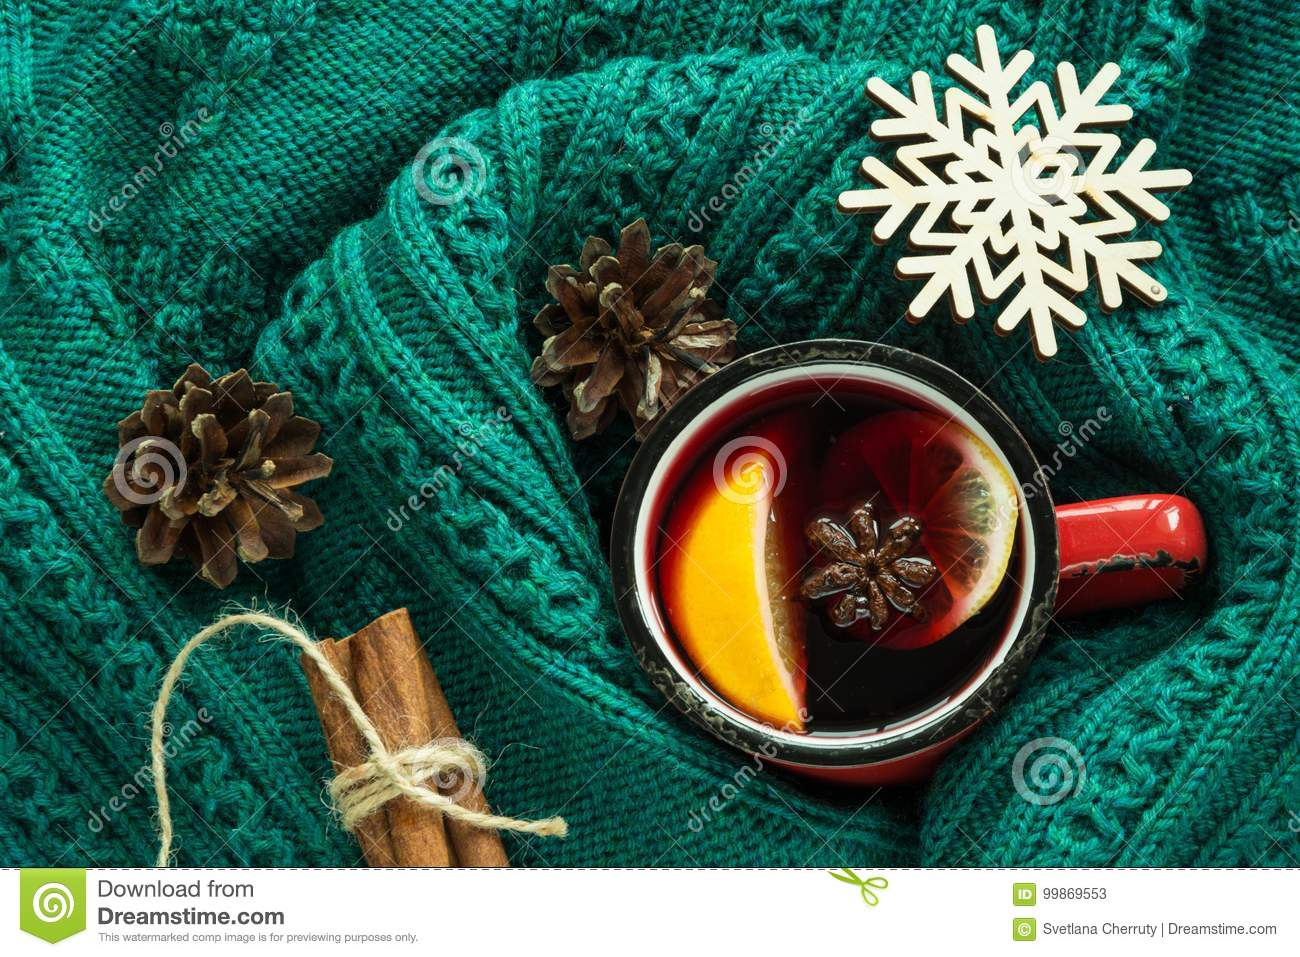 Christmas and winter traditional hot beverage. Mulled wine in red mug with spice wrapped in warm green sweater.